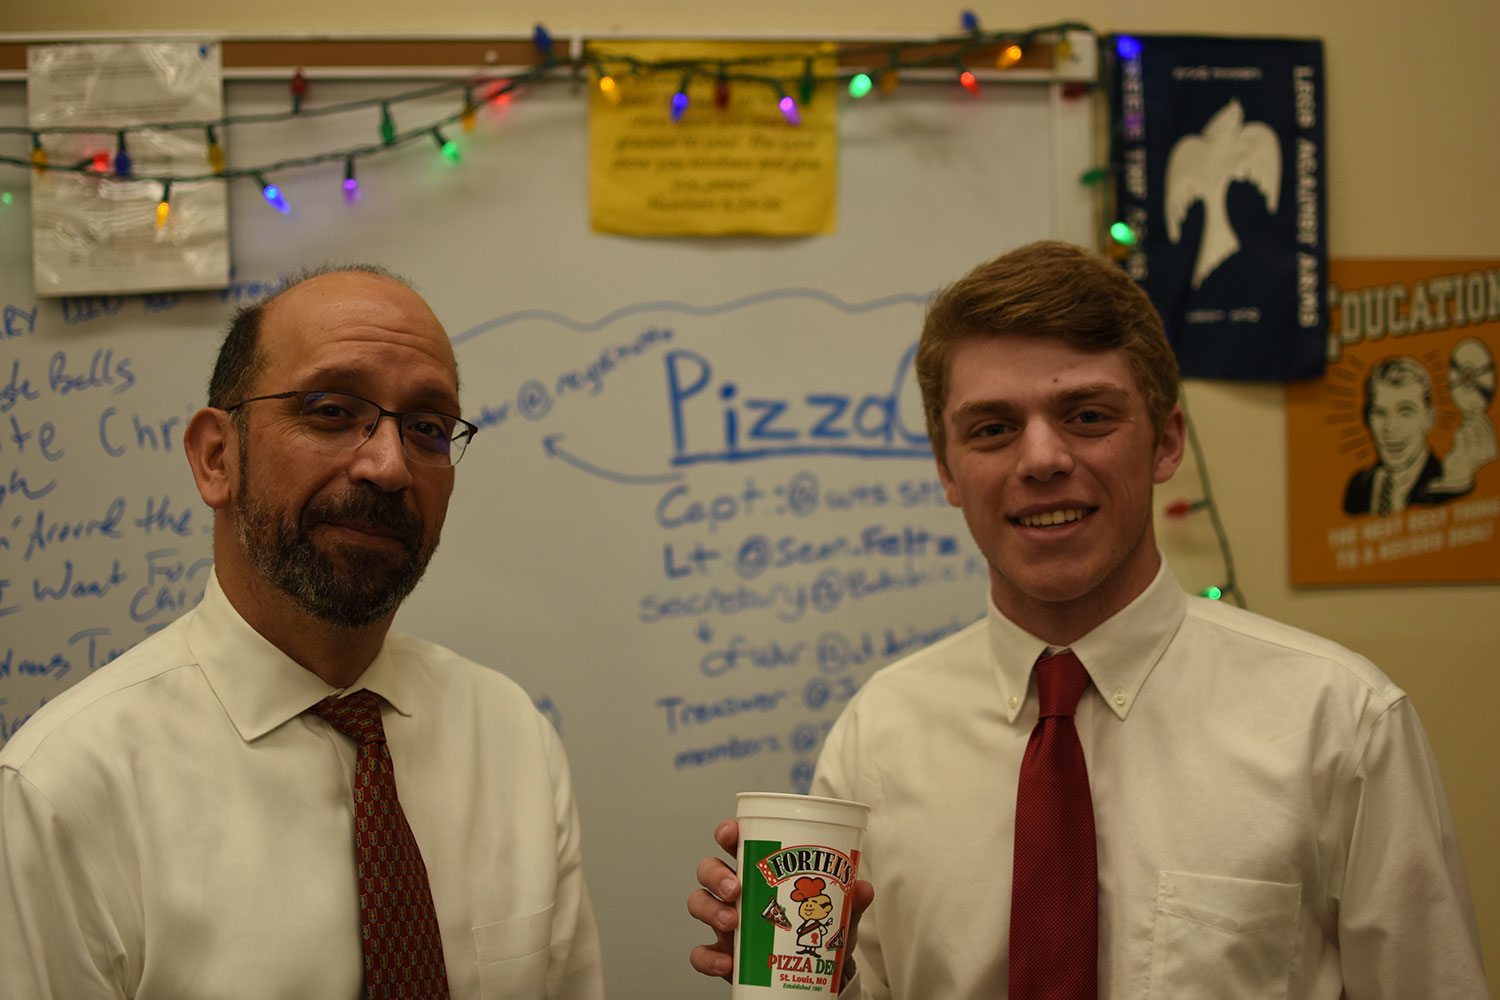 Senior Tyler Dawson and club moderator Ray Sherrock pose with a Fortel's Pizza cup.